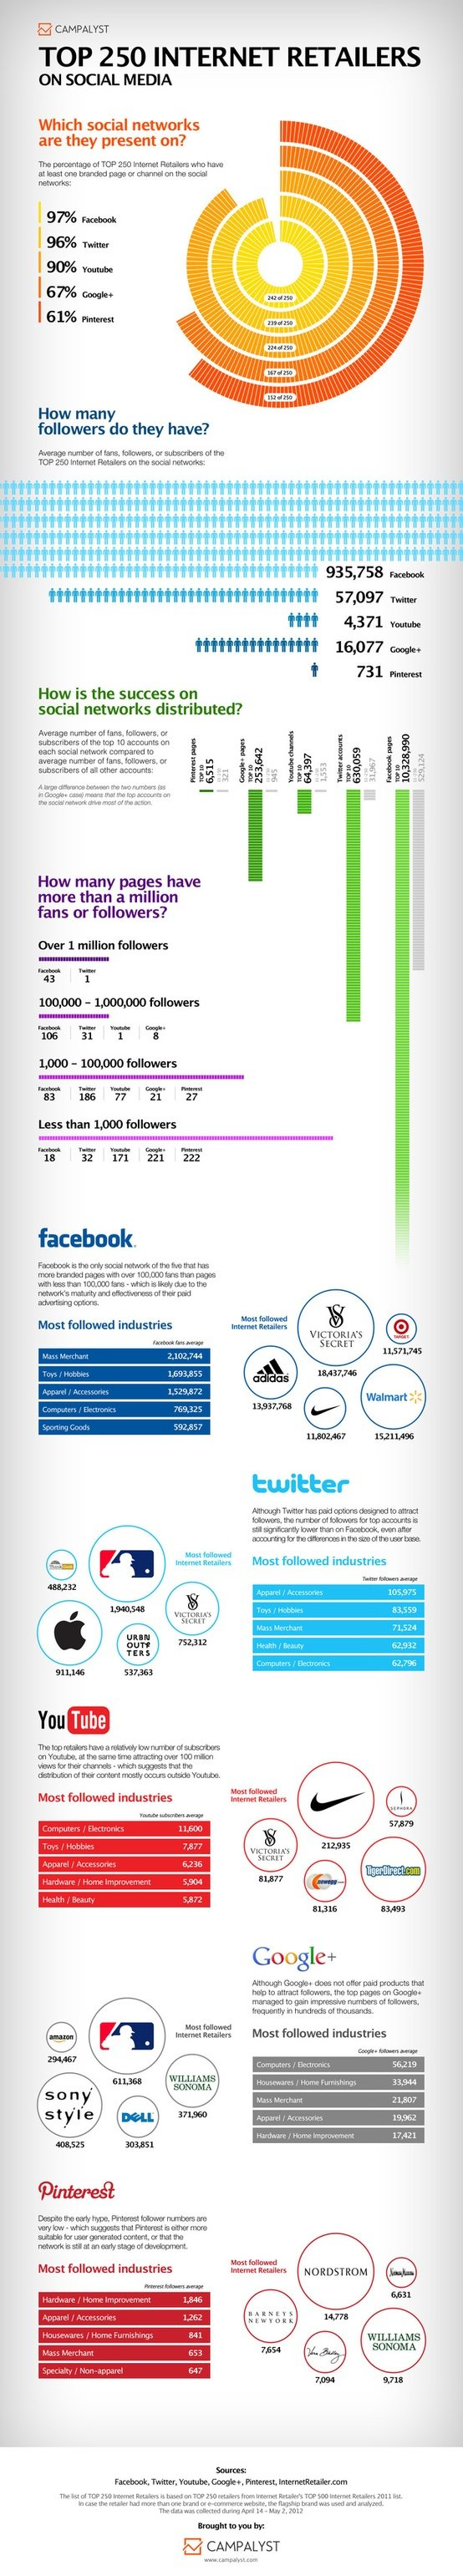 Top 250 internet retailers on social media #infographic